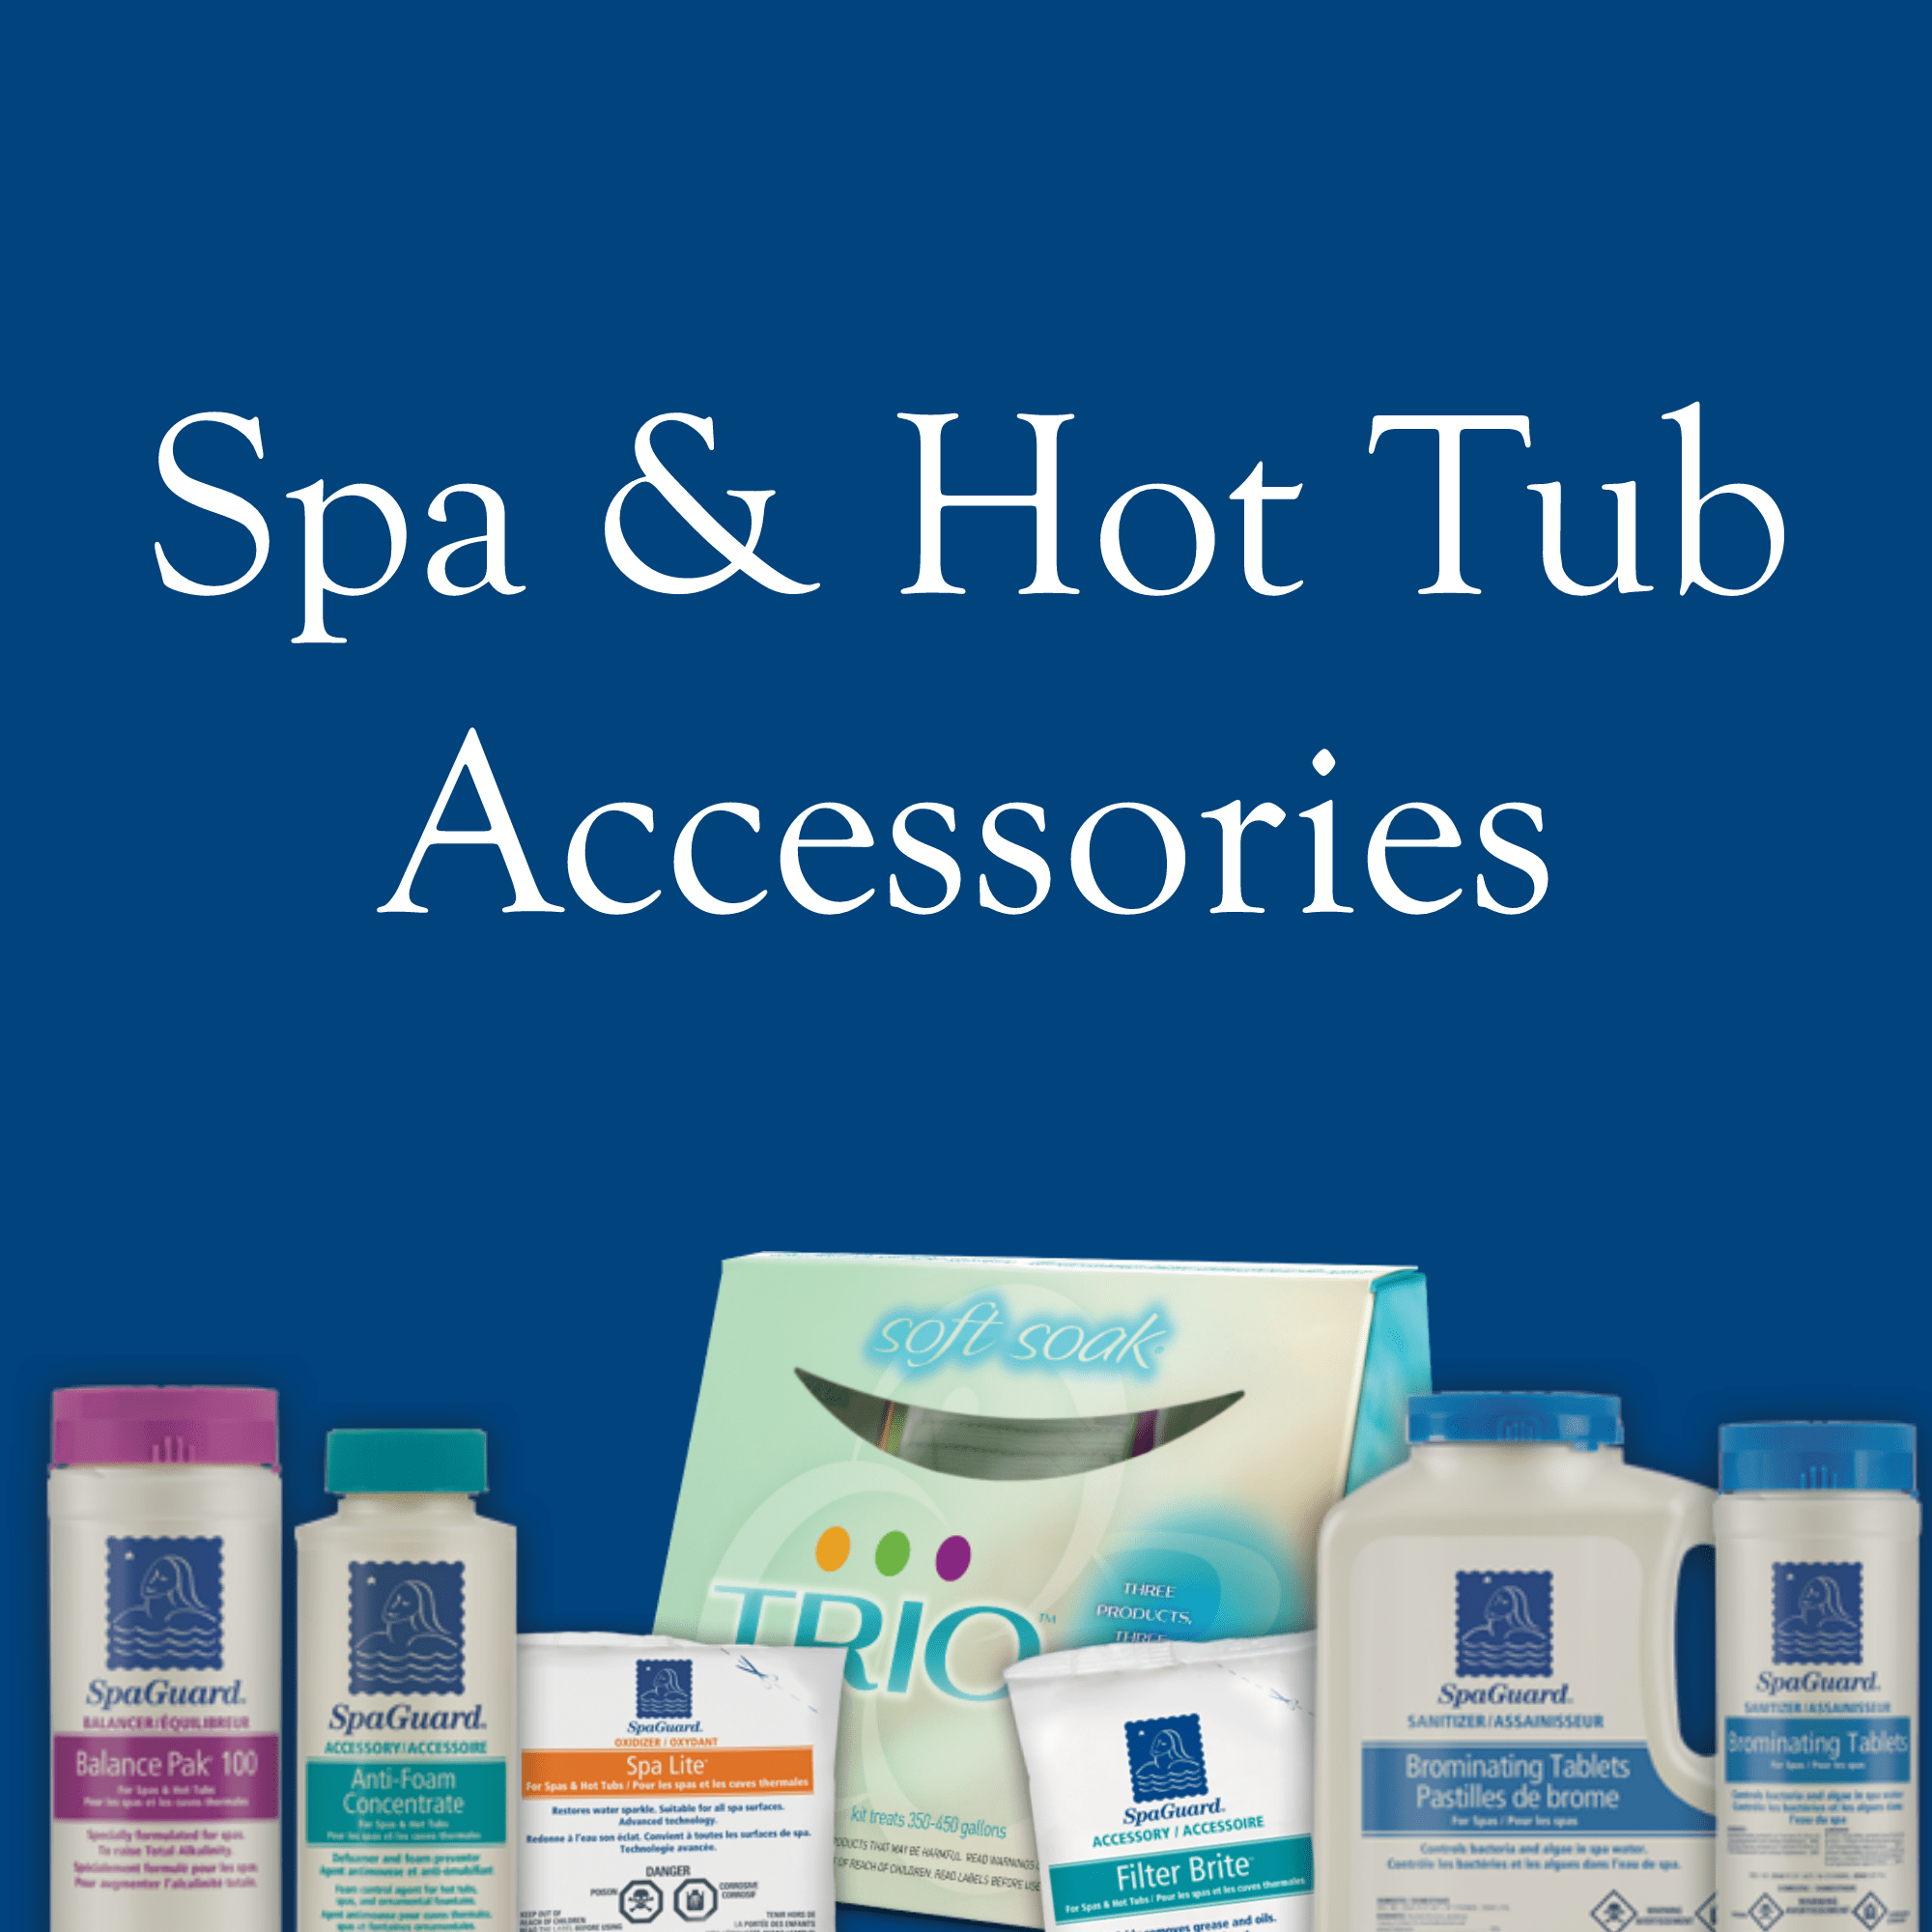 Spa and Hot Tub Accessories